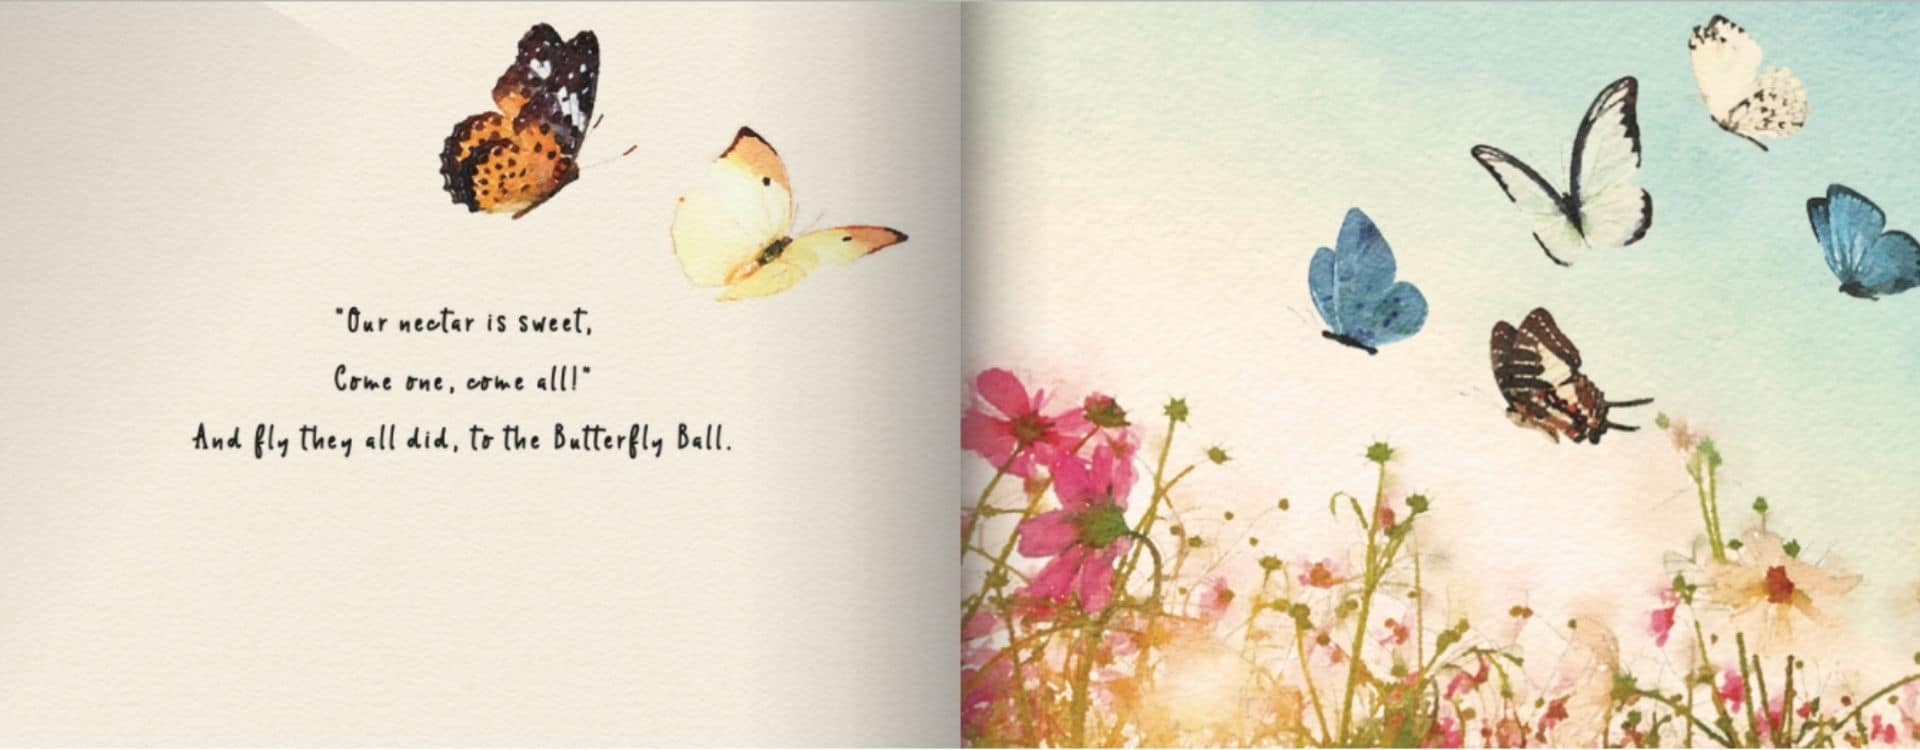 The Butterfly Ball by Kathryn Trainor for Milkbarn Kids Sample Page 2